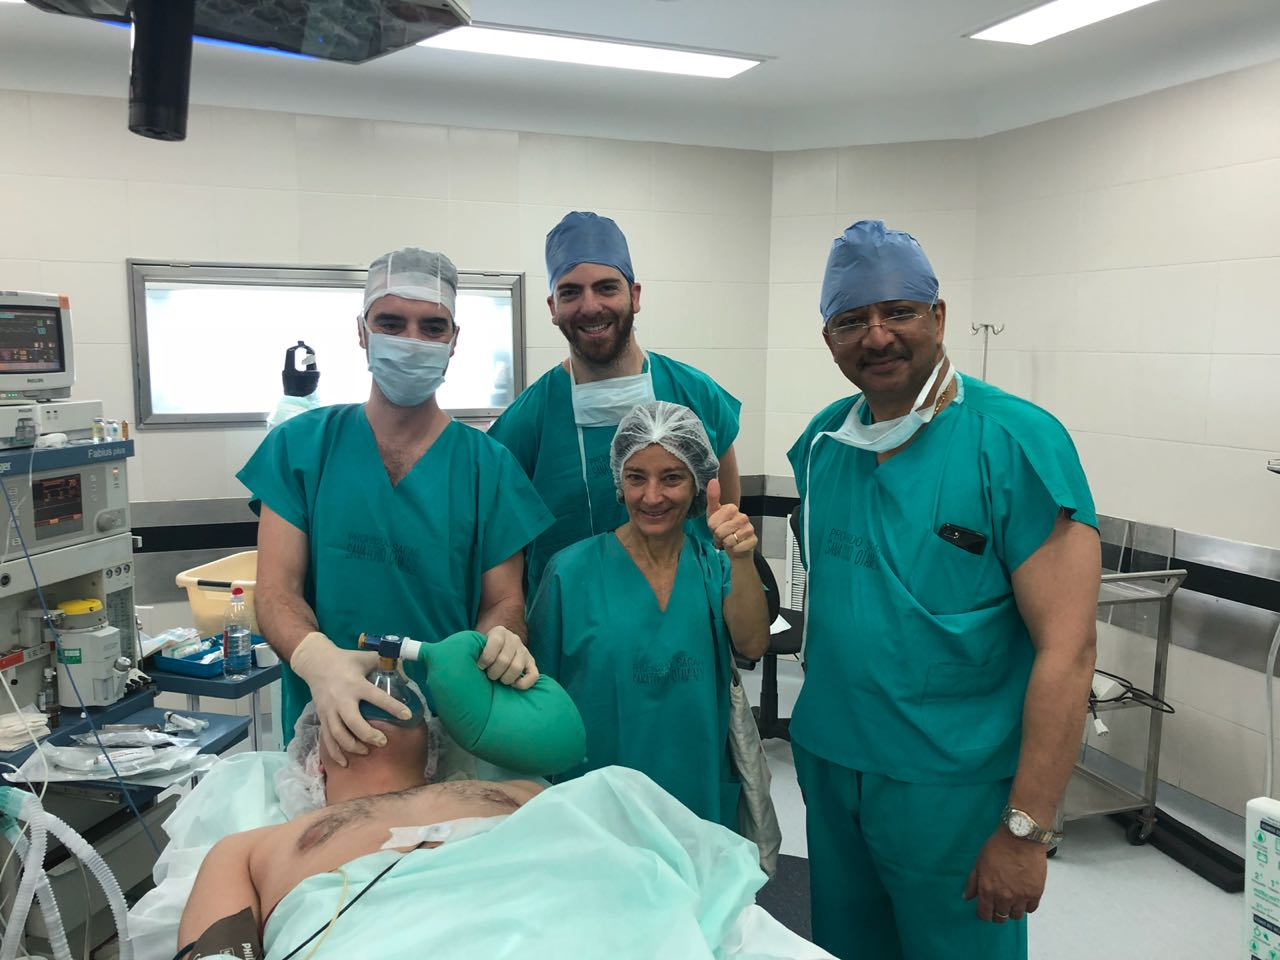 Prof SM Balaji in the operating room at Hospital Aleman with Dr Victoria Pezza and residents of the Department of Oral and Maxillofacial Surgery